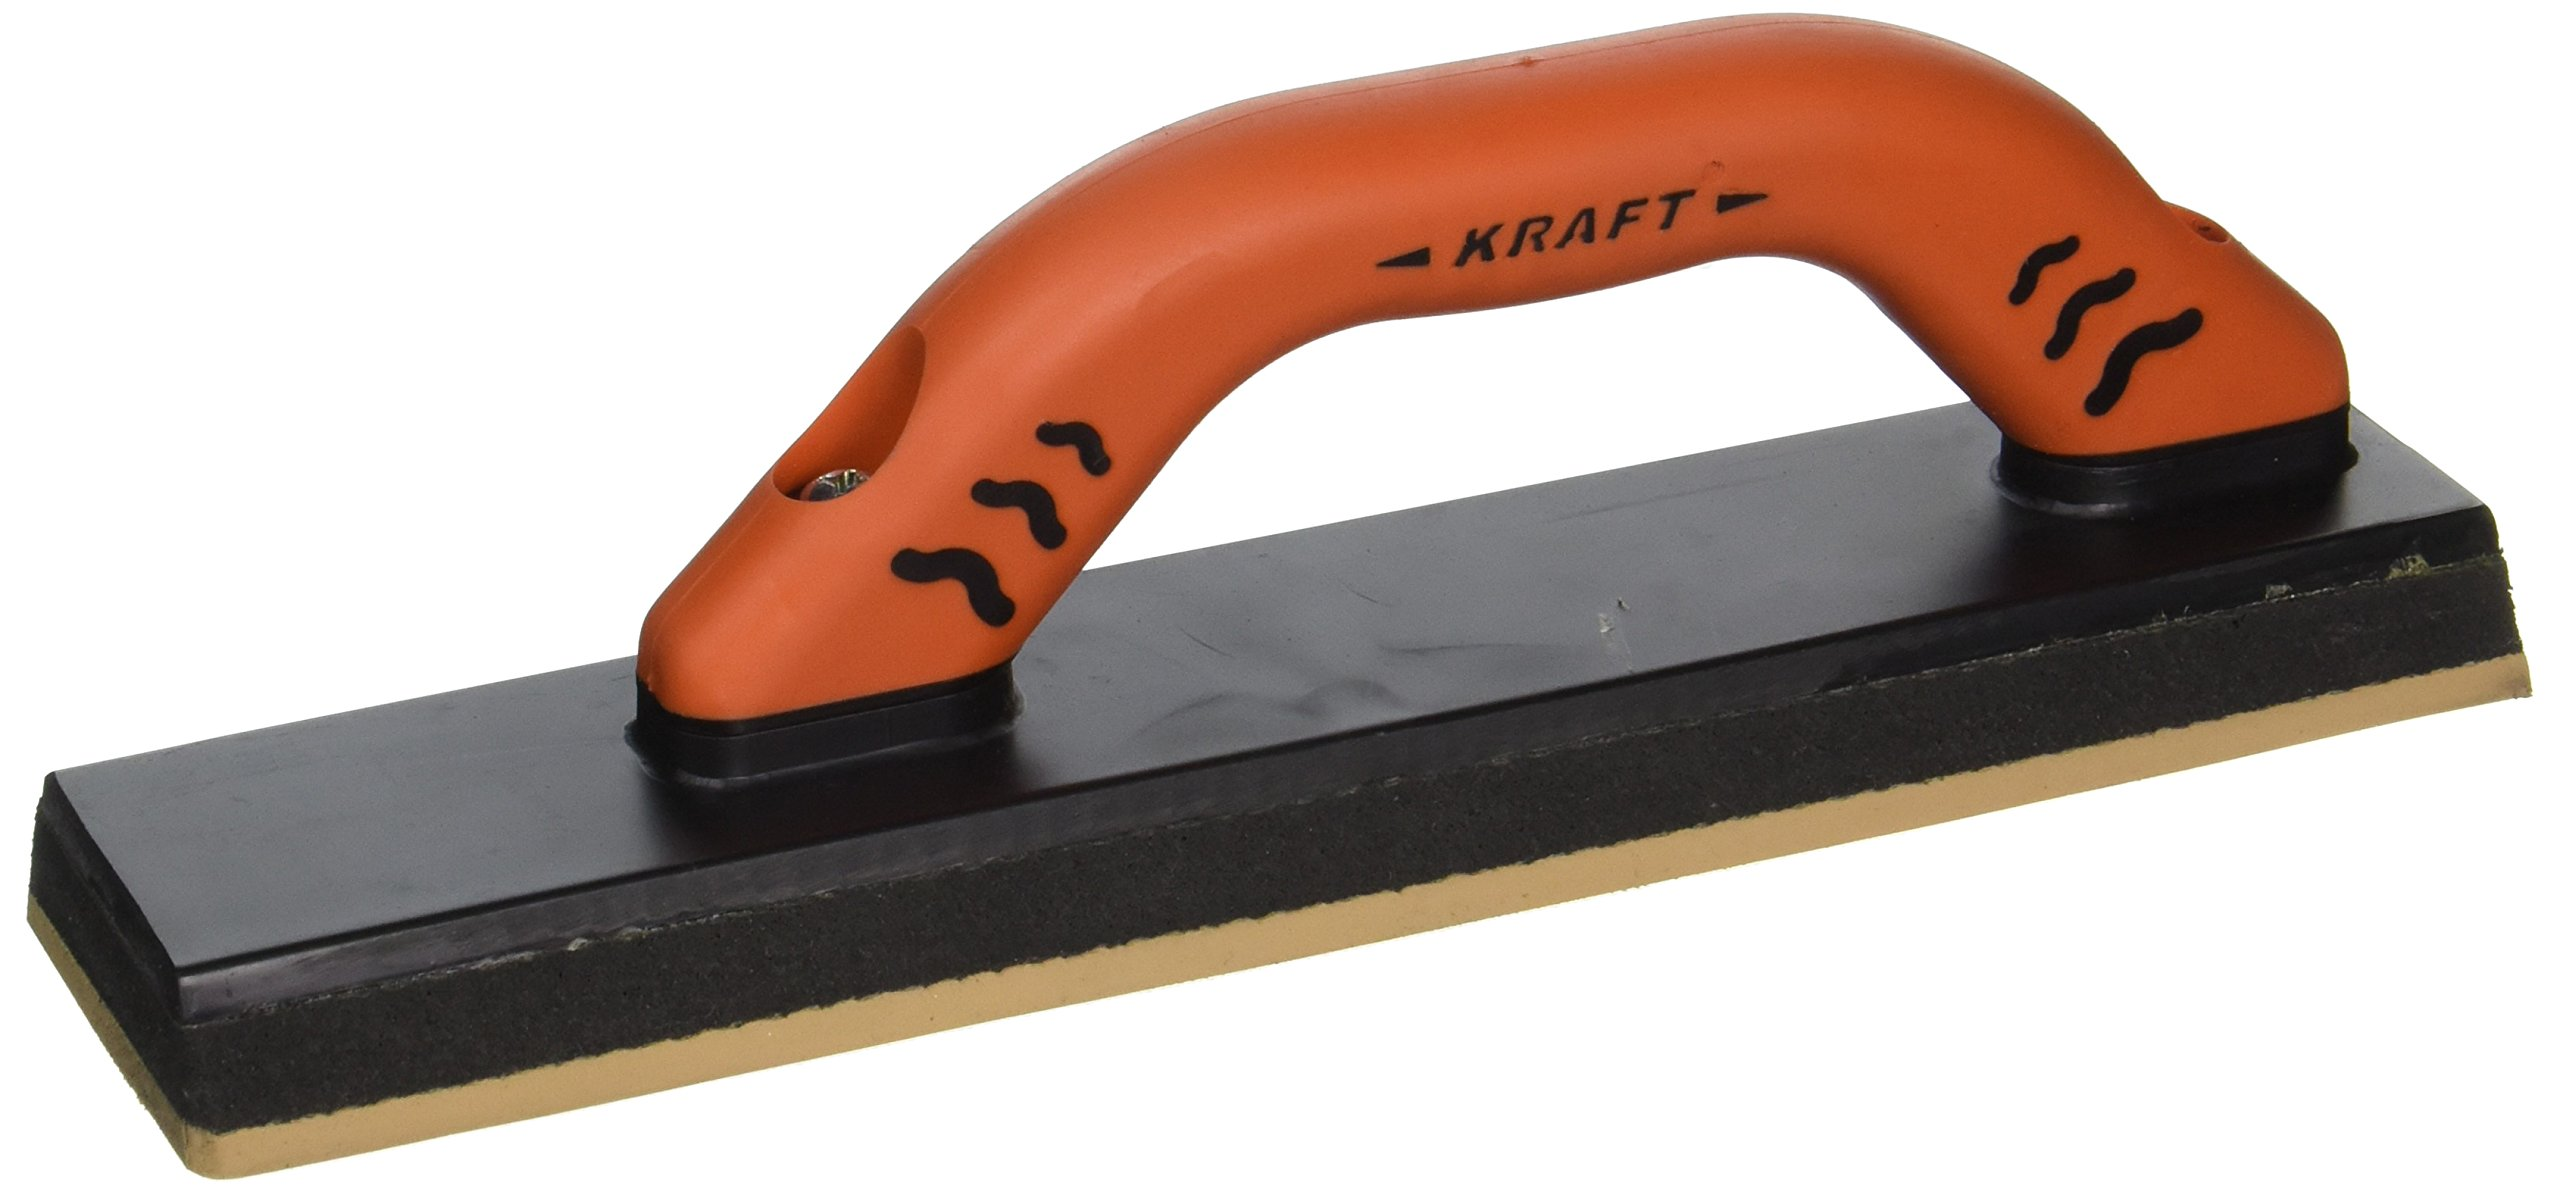 Superior Tile Cutter and Tools St127PF Toe Grout Float with ProForm Soft Grip Handle, 12-Inch x 3-Inch, Orange and Black